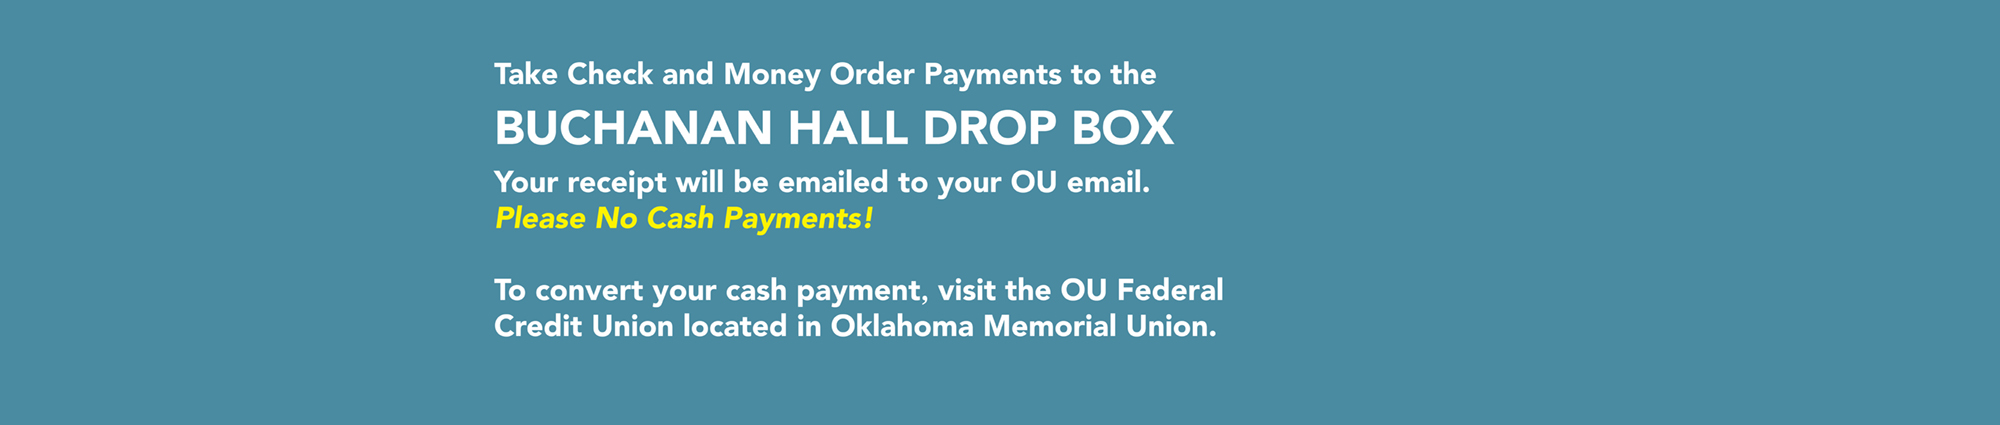 Take Check and Money Order Payments to the BUCHANAN HALL DROP BOX Your receipt will be emailed to your OU email.  Please No Cash Payments!  To convert your cash payment, visit the OU Federal Credit Union located in Oklahoma Memorial Union.